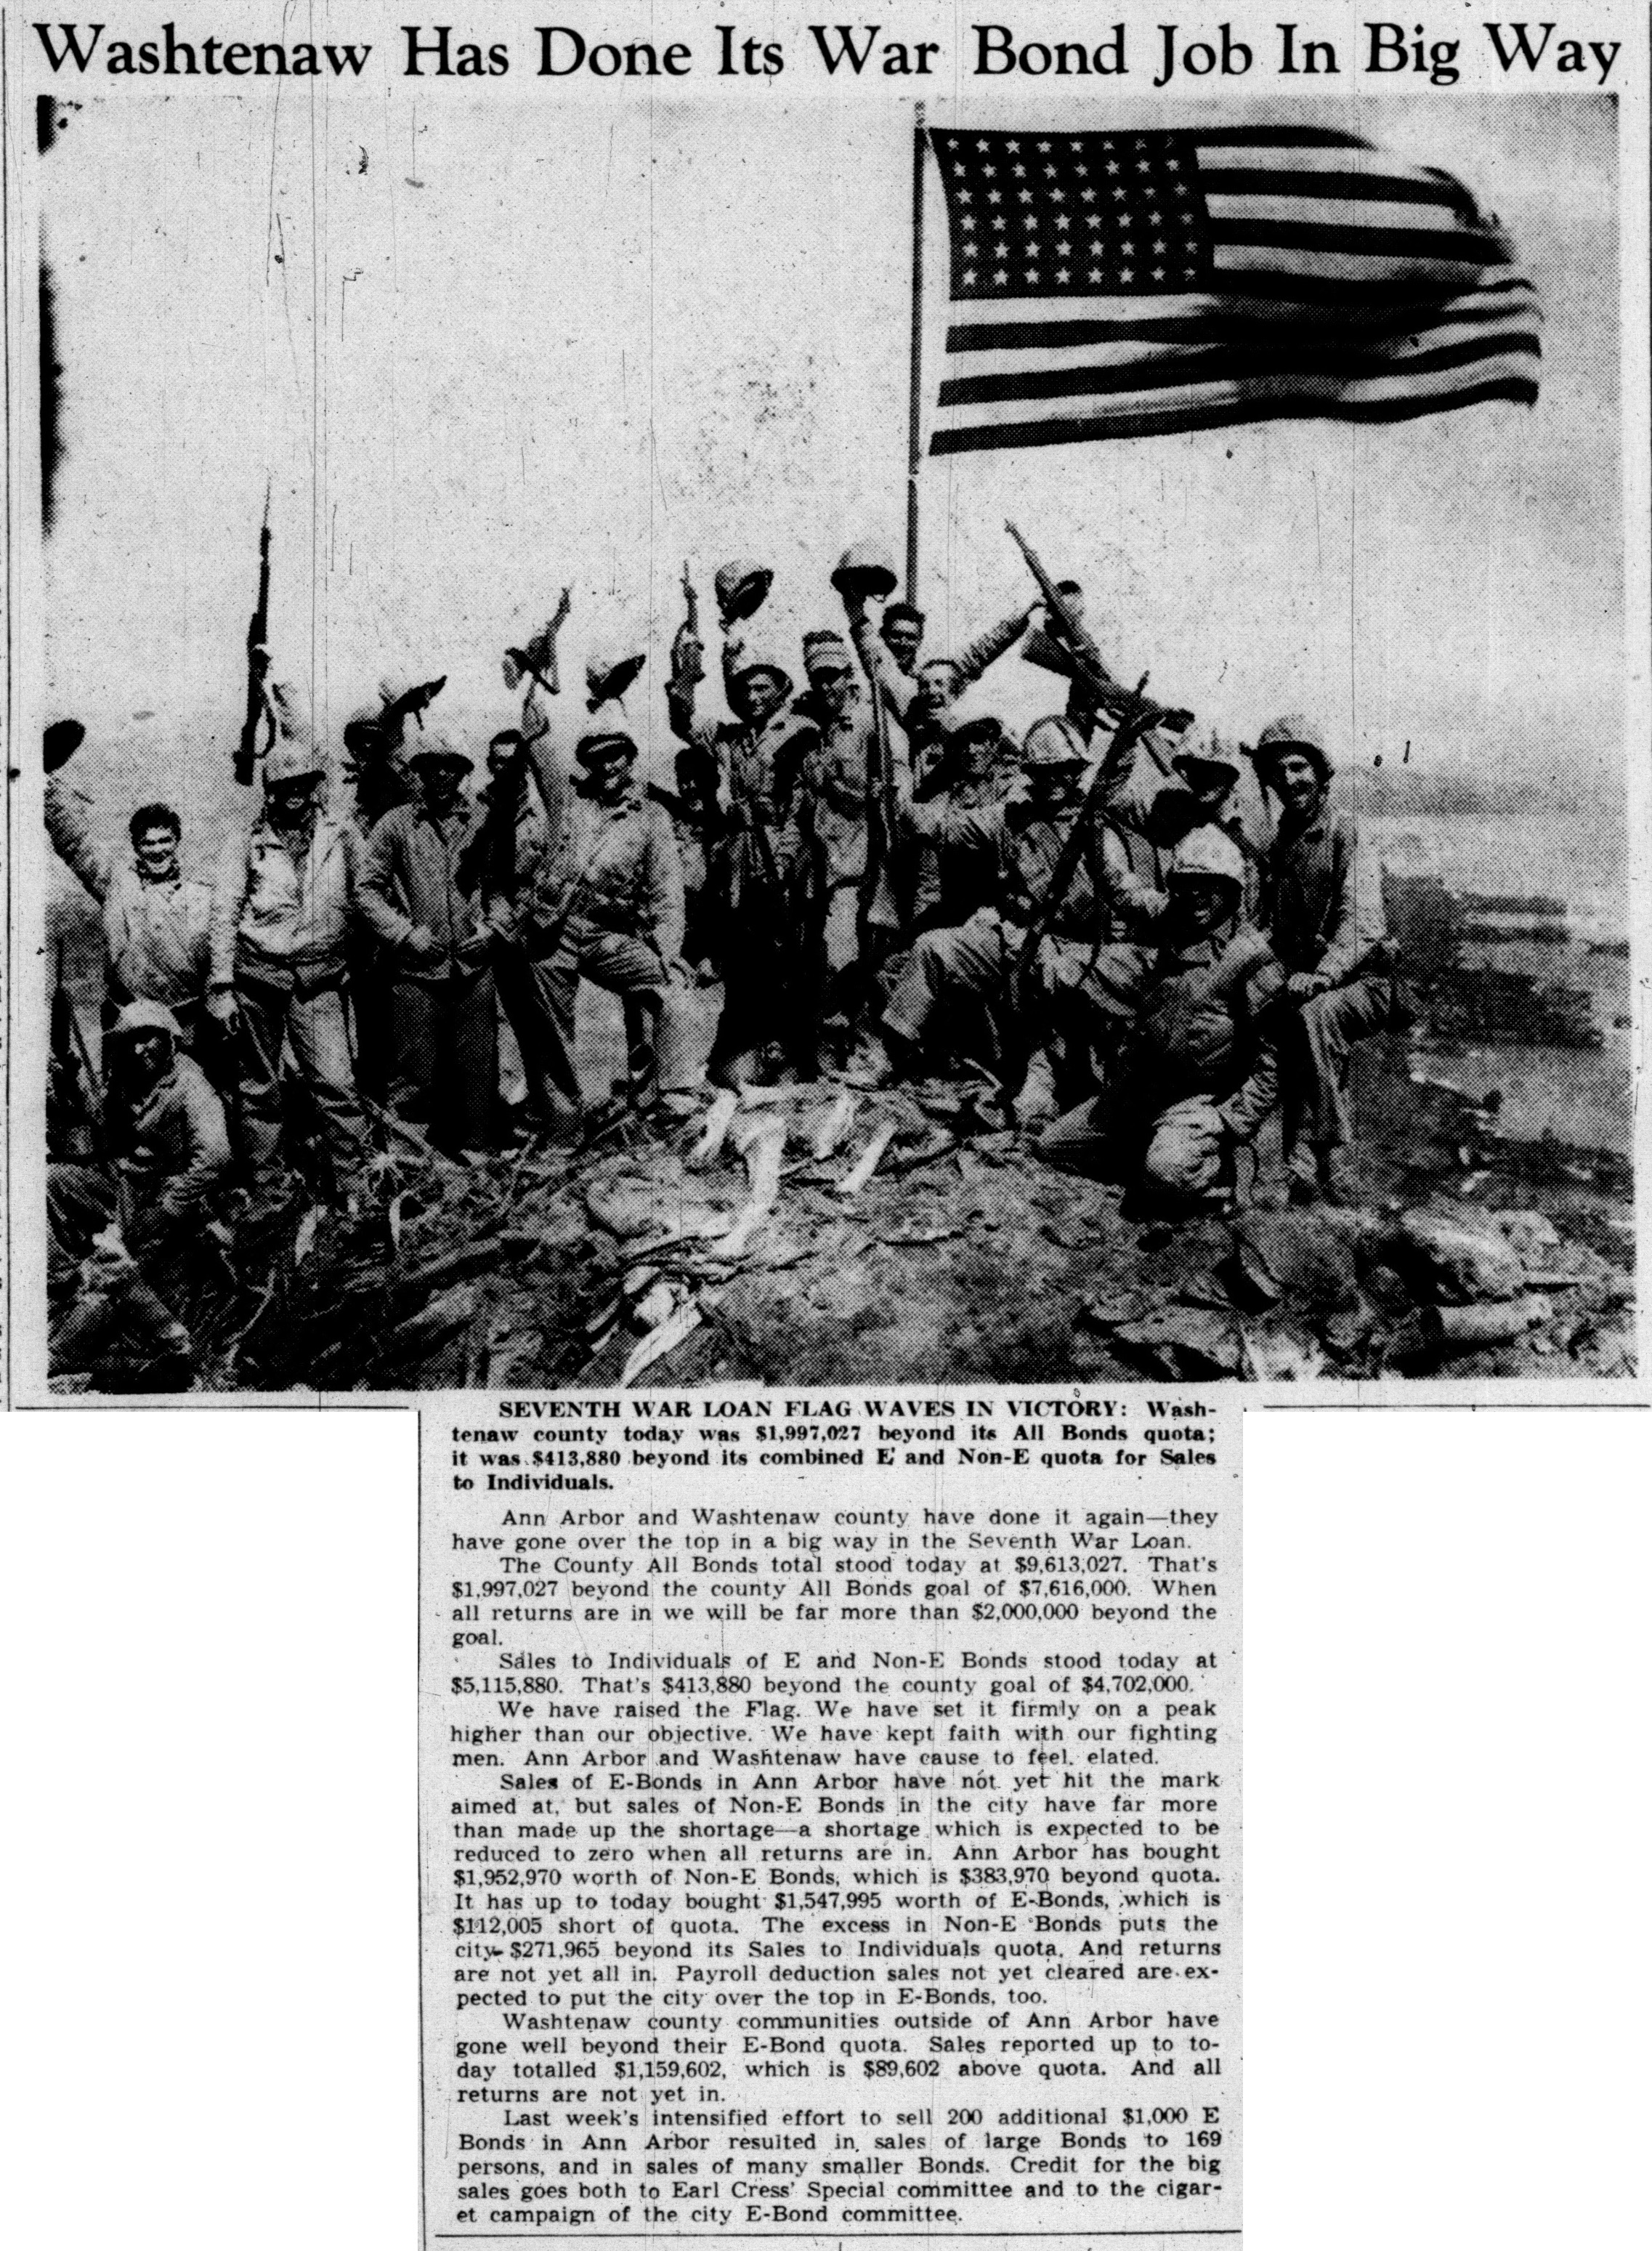 Washtenaw Has Done Its War Bond Job In Big Way image